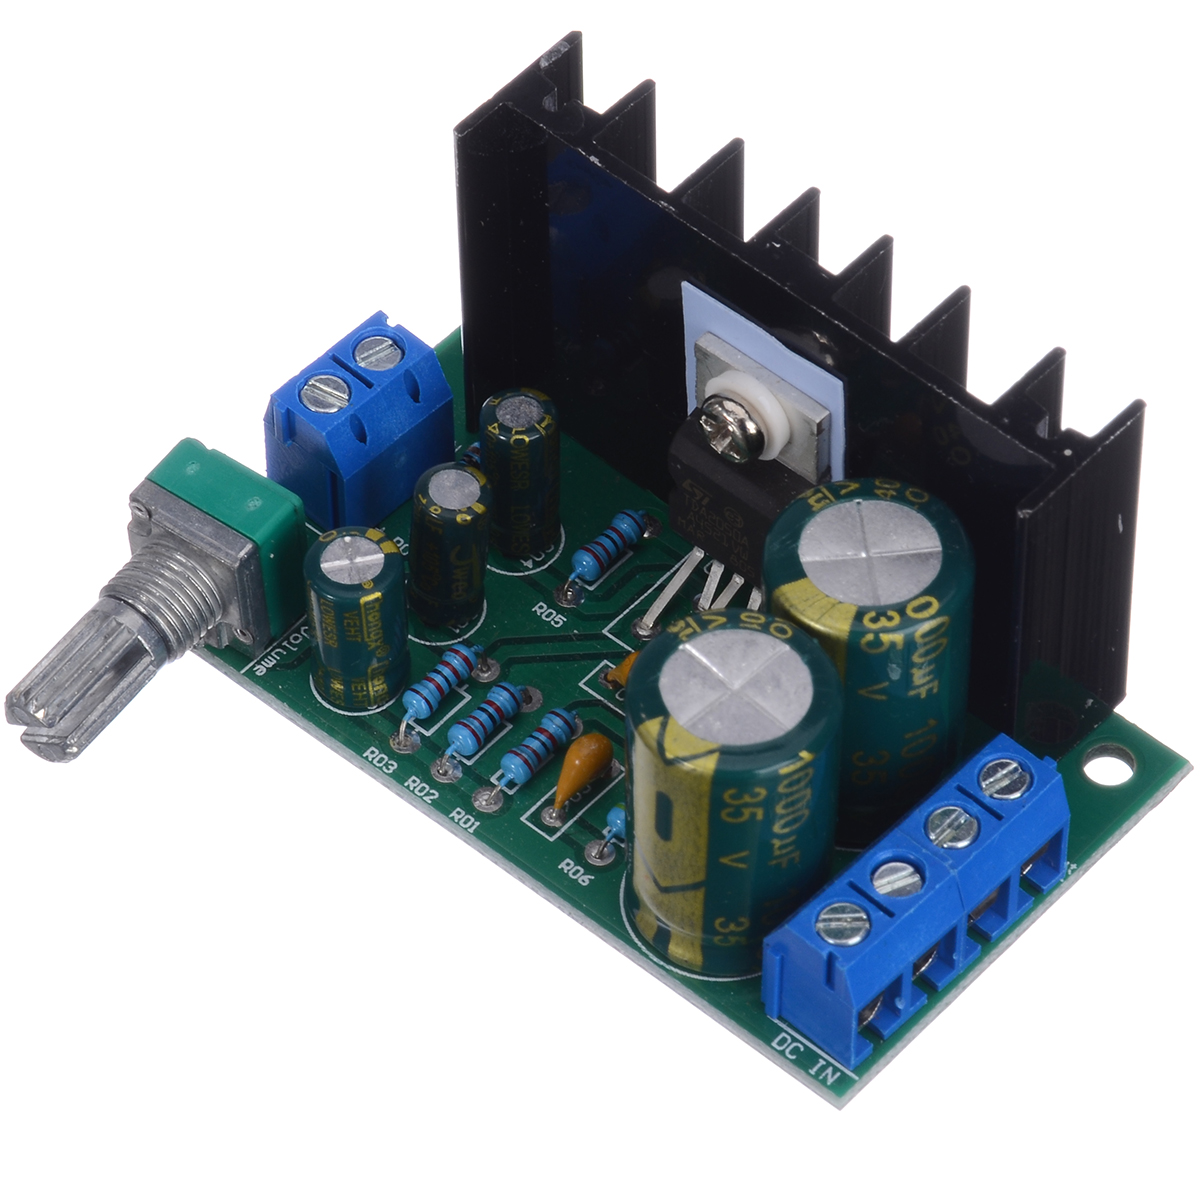 DC 12-24V TDA2050 Digital Amplifier Board 5W-120W TDA2050 Mono Channel Audio Power Amplifier Module